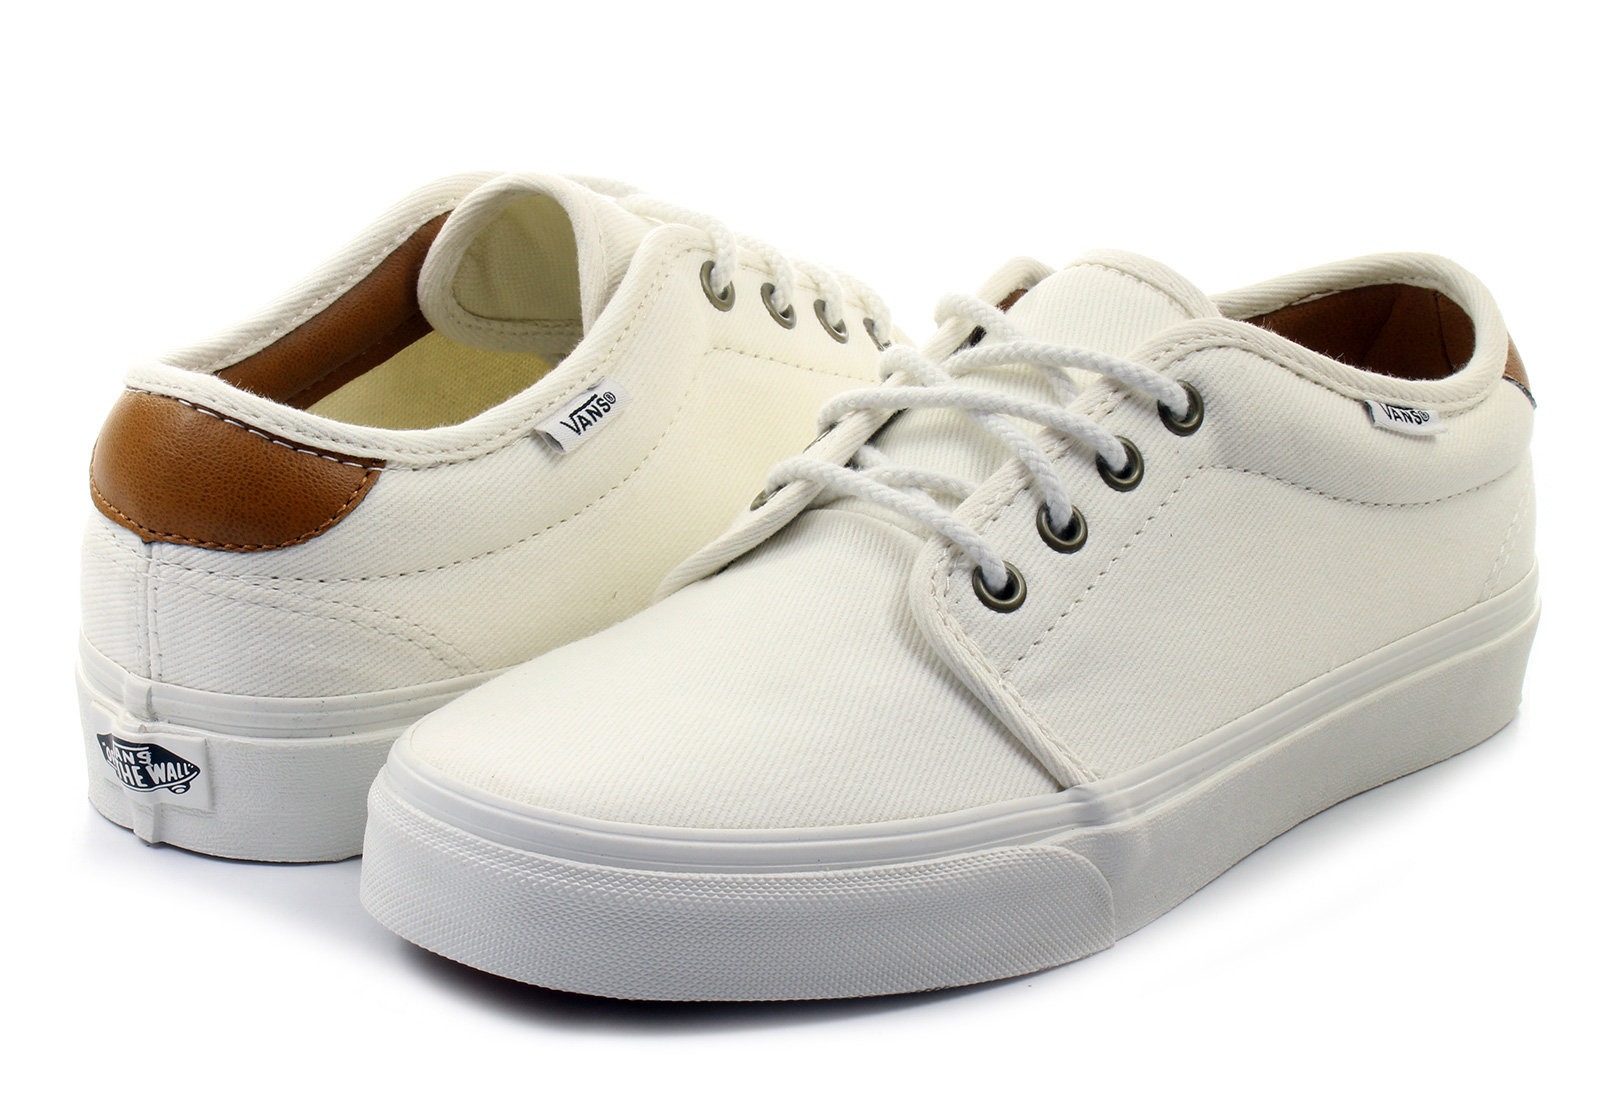 87a3e3f70c Vans Sneakers - 159 Vulcanized - VRQNFNO - Online shop for ...